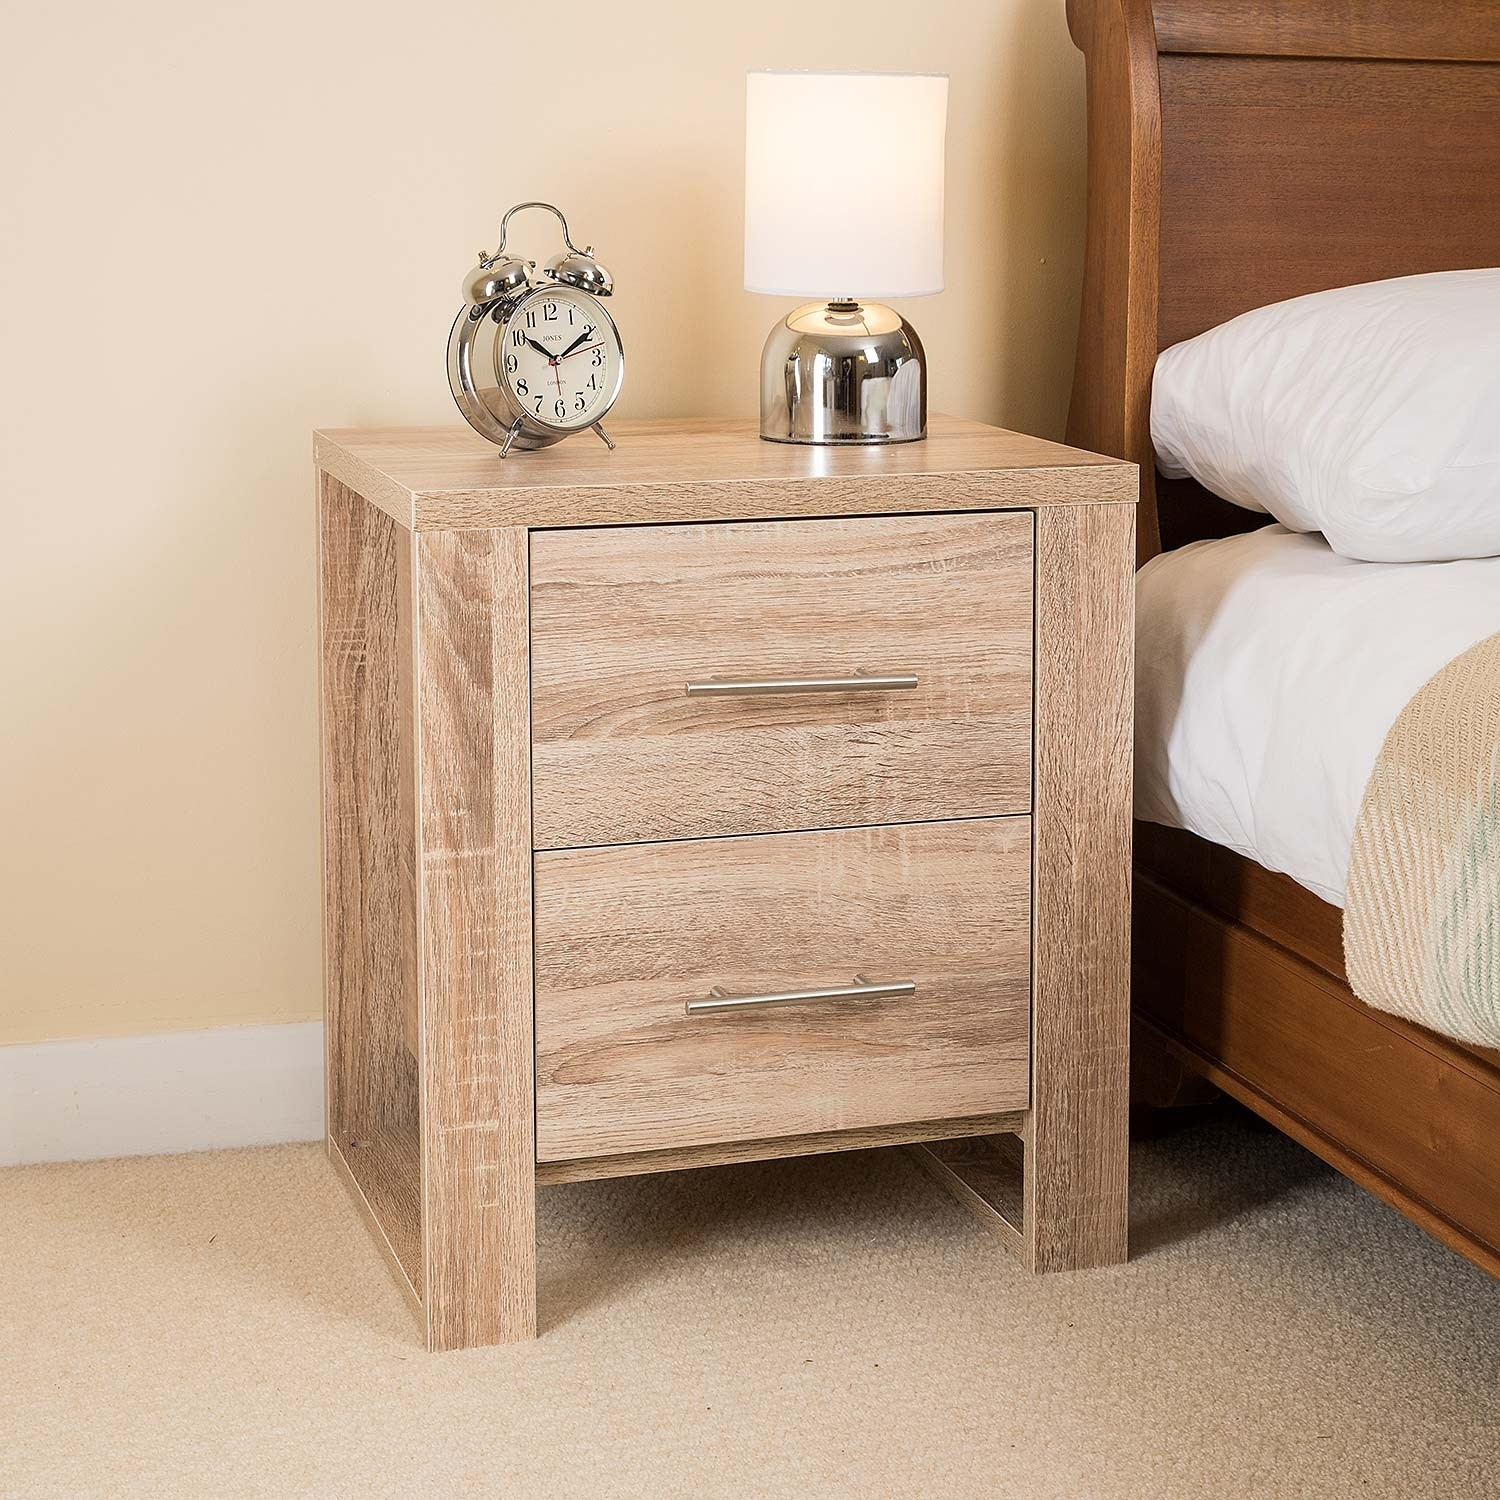 design prepac fremont drawerstand with open marvelous drawernd christow oak effect available this sonoma tall black coal harbor drawer accent table white drawerand charleston